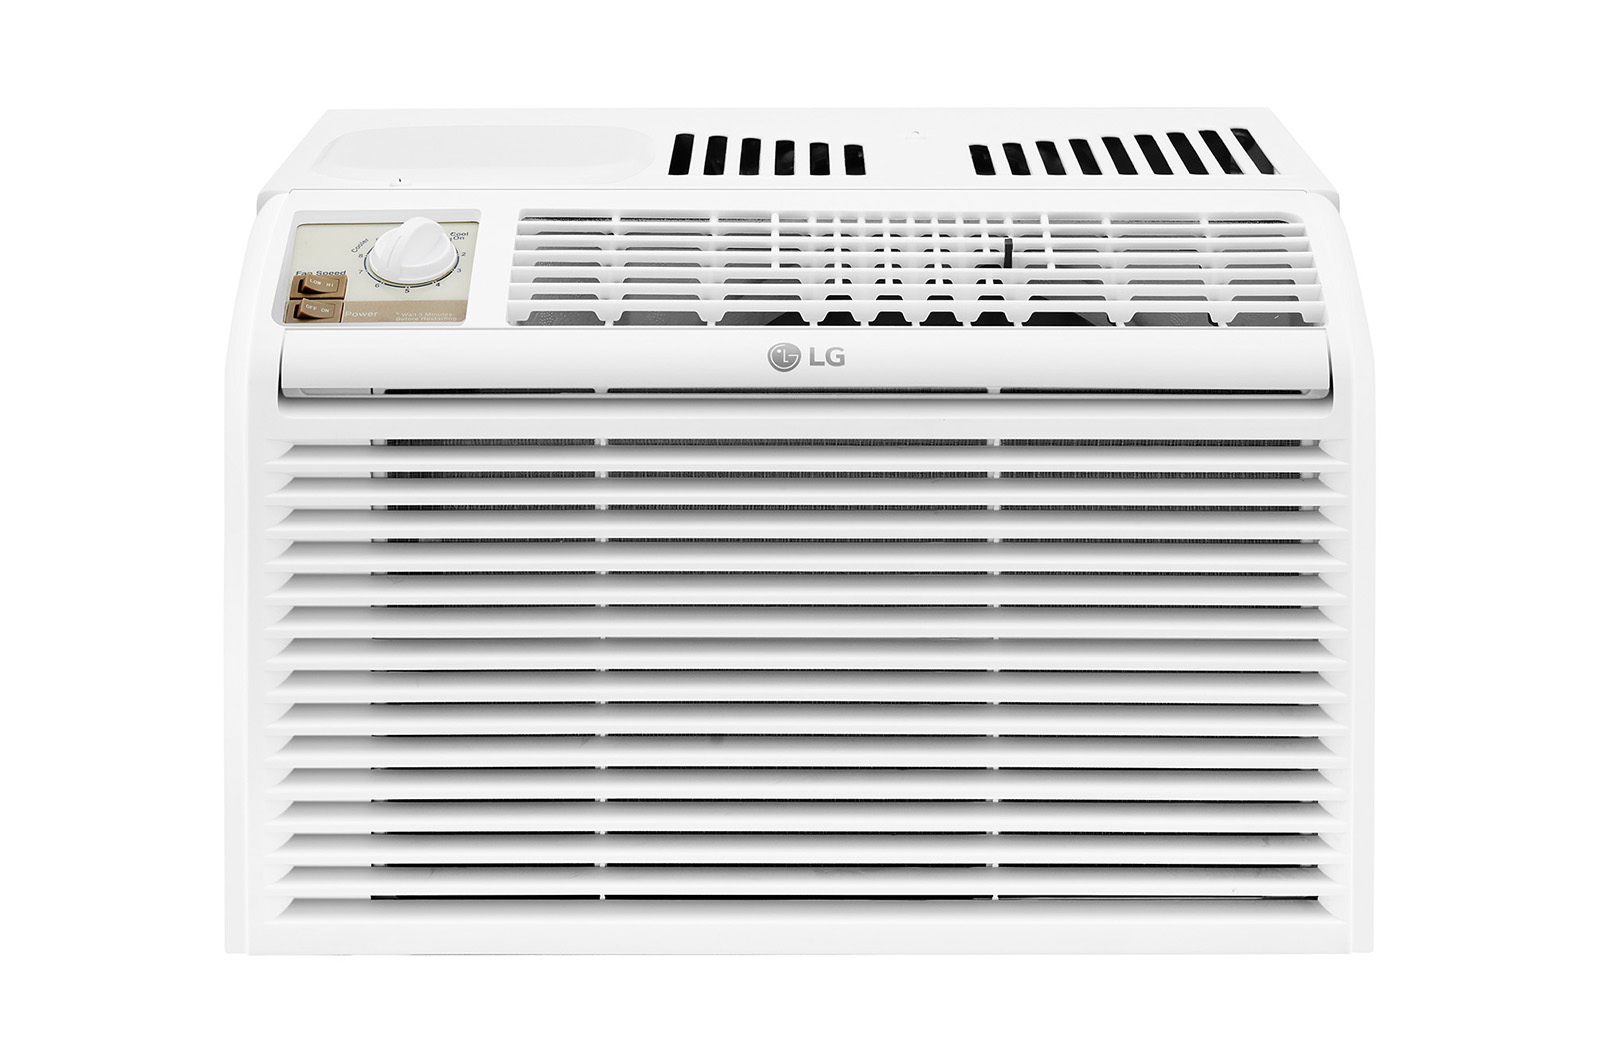 LG LW5016 5000 BTU Window Air Conditioner with Manual Controls - 115V